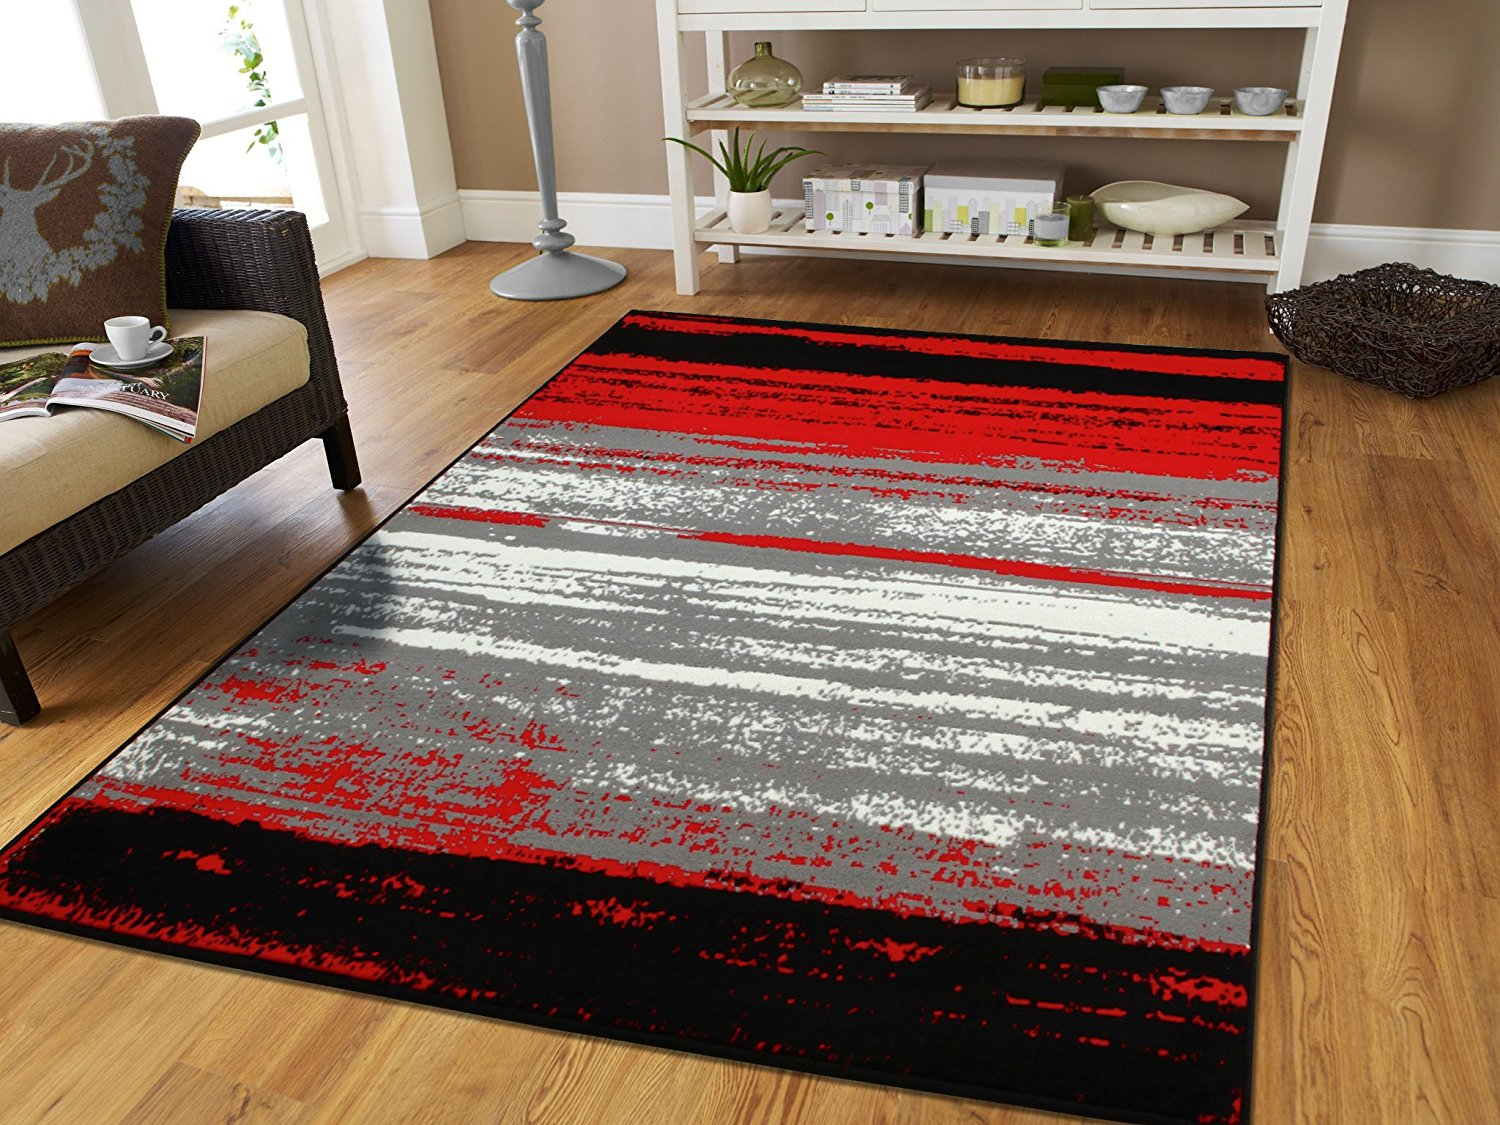 large 8x11 contemporary area rugs red black gray 8x10 area rugs under $100 UBAOIUJ